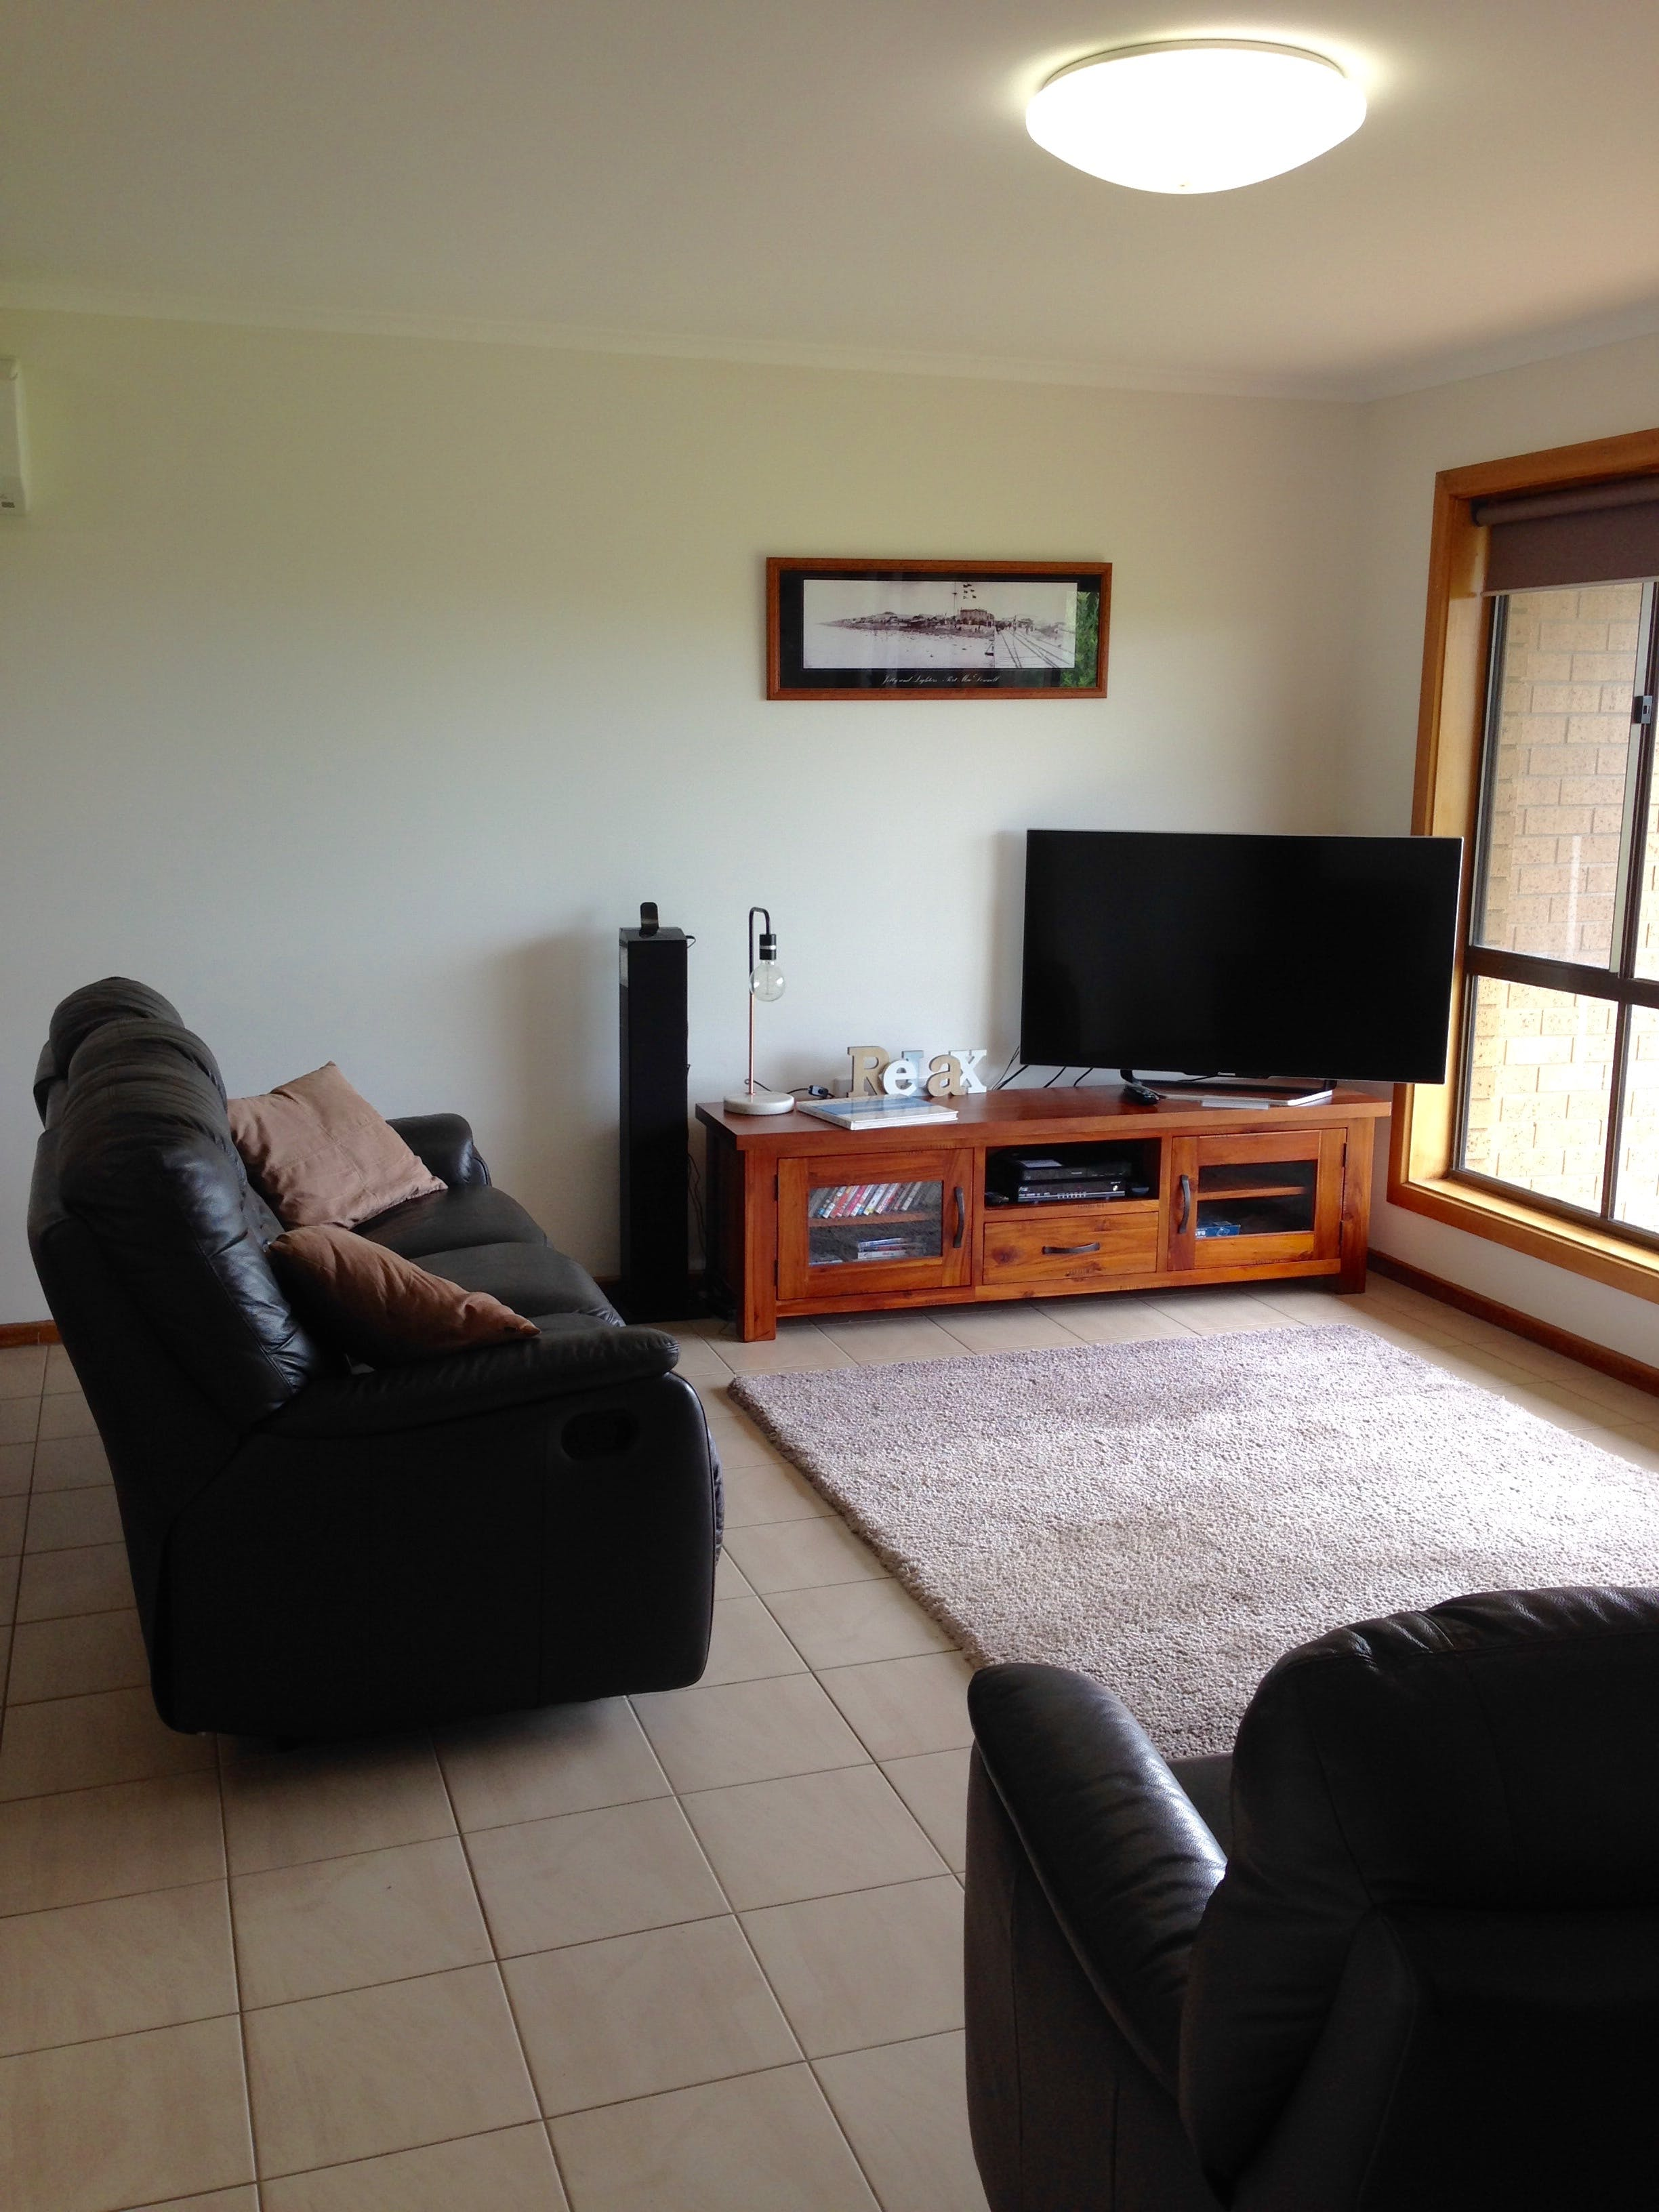 Springs Beach House - Accommodation Perth